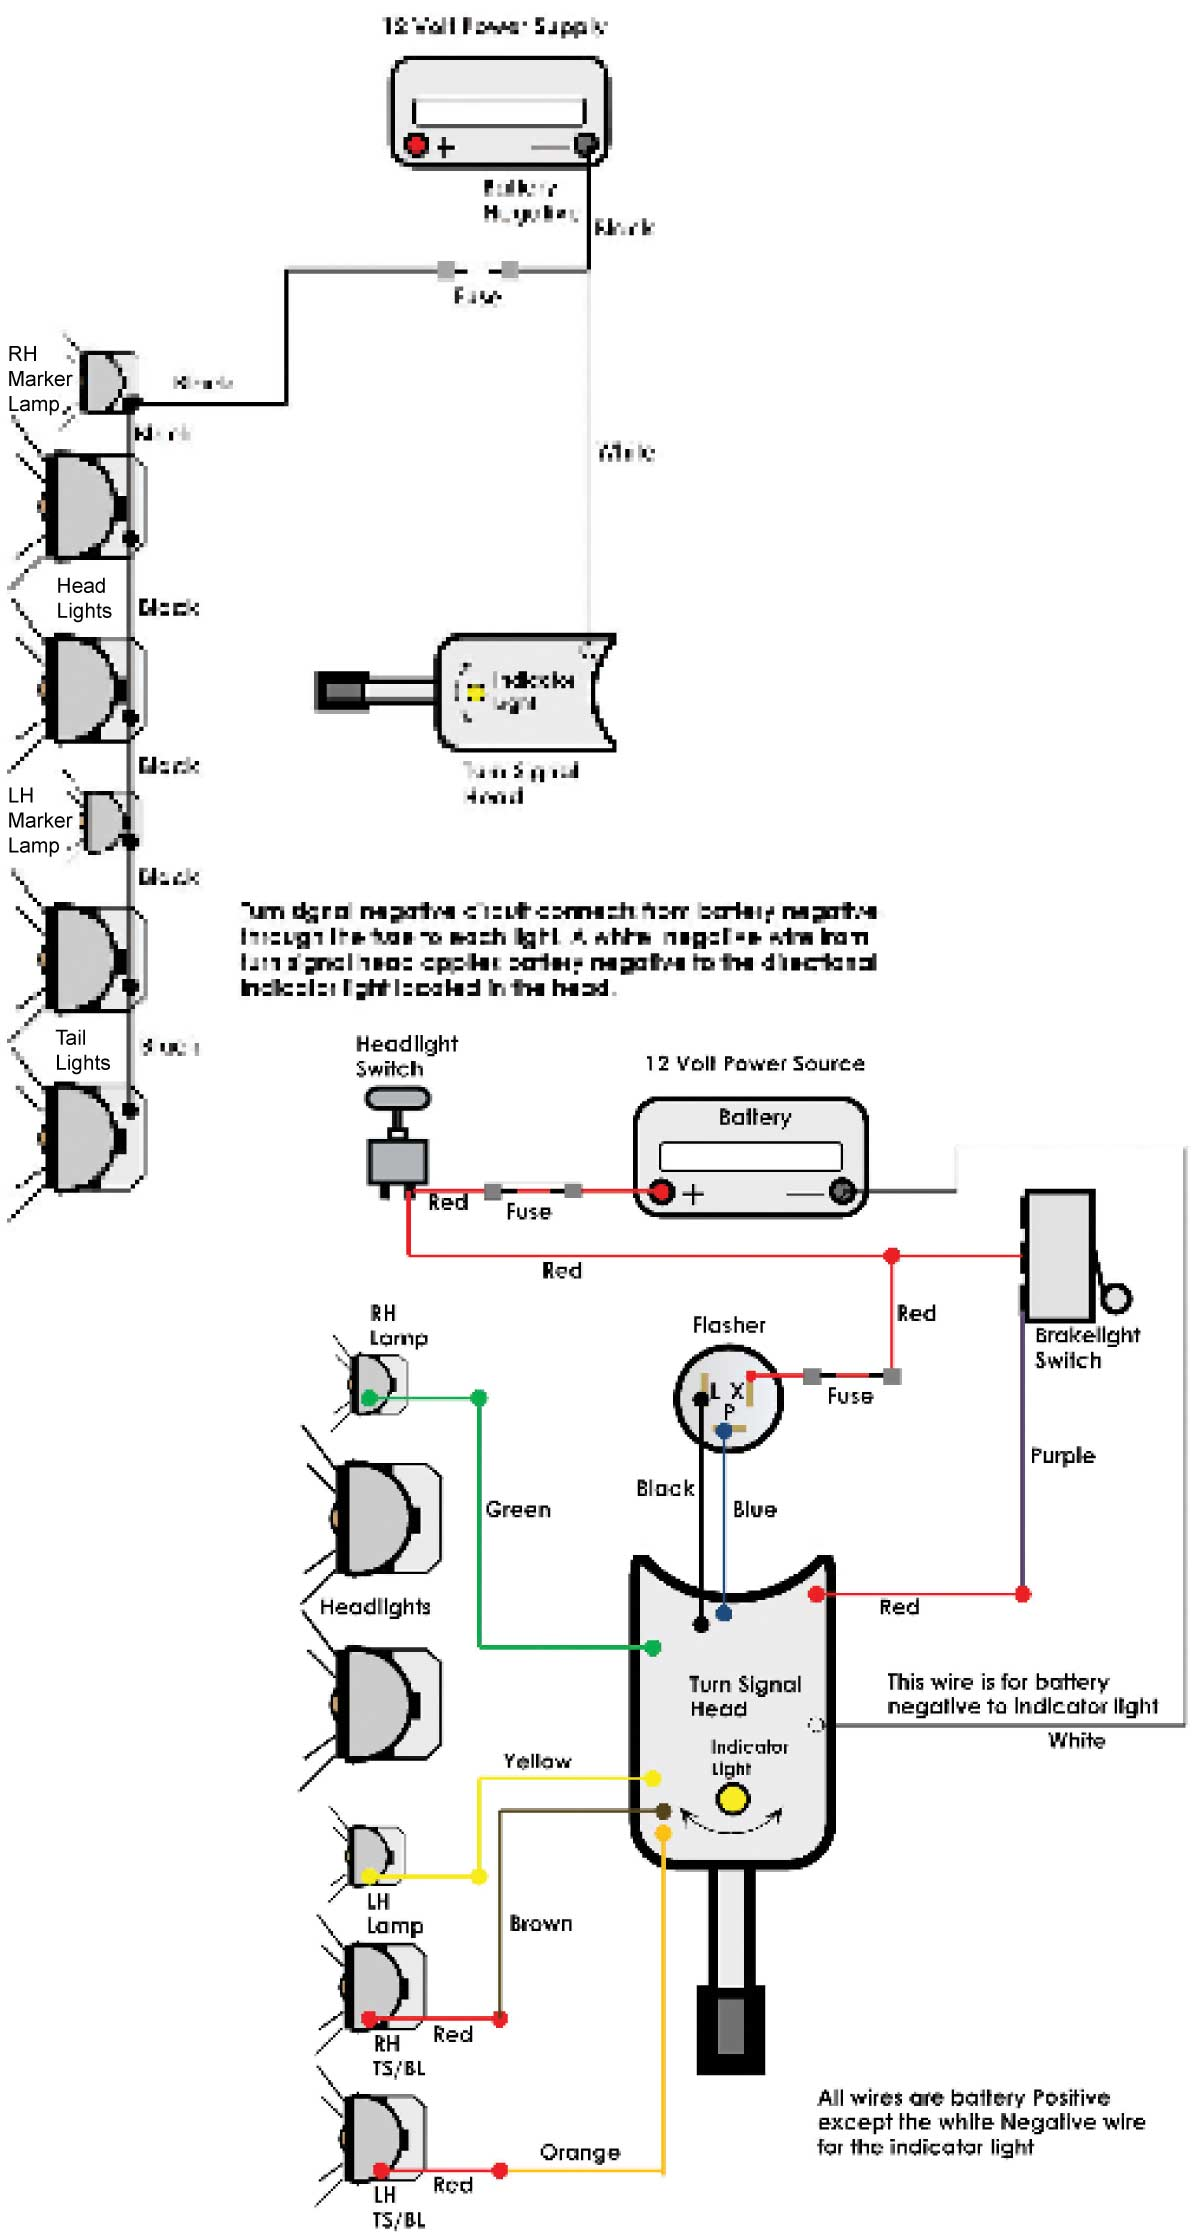 6 volt turn signal wiring diagram guru - july / august 2009 | buggiesunlimited.com #12